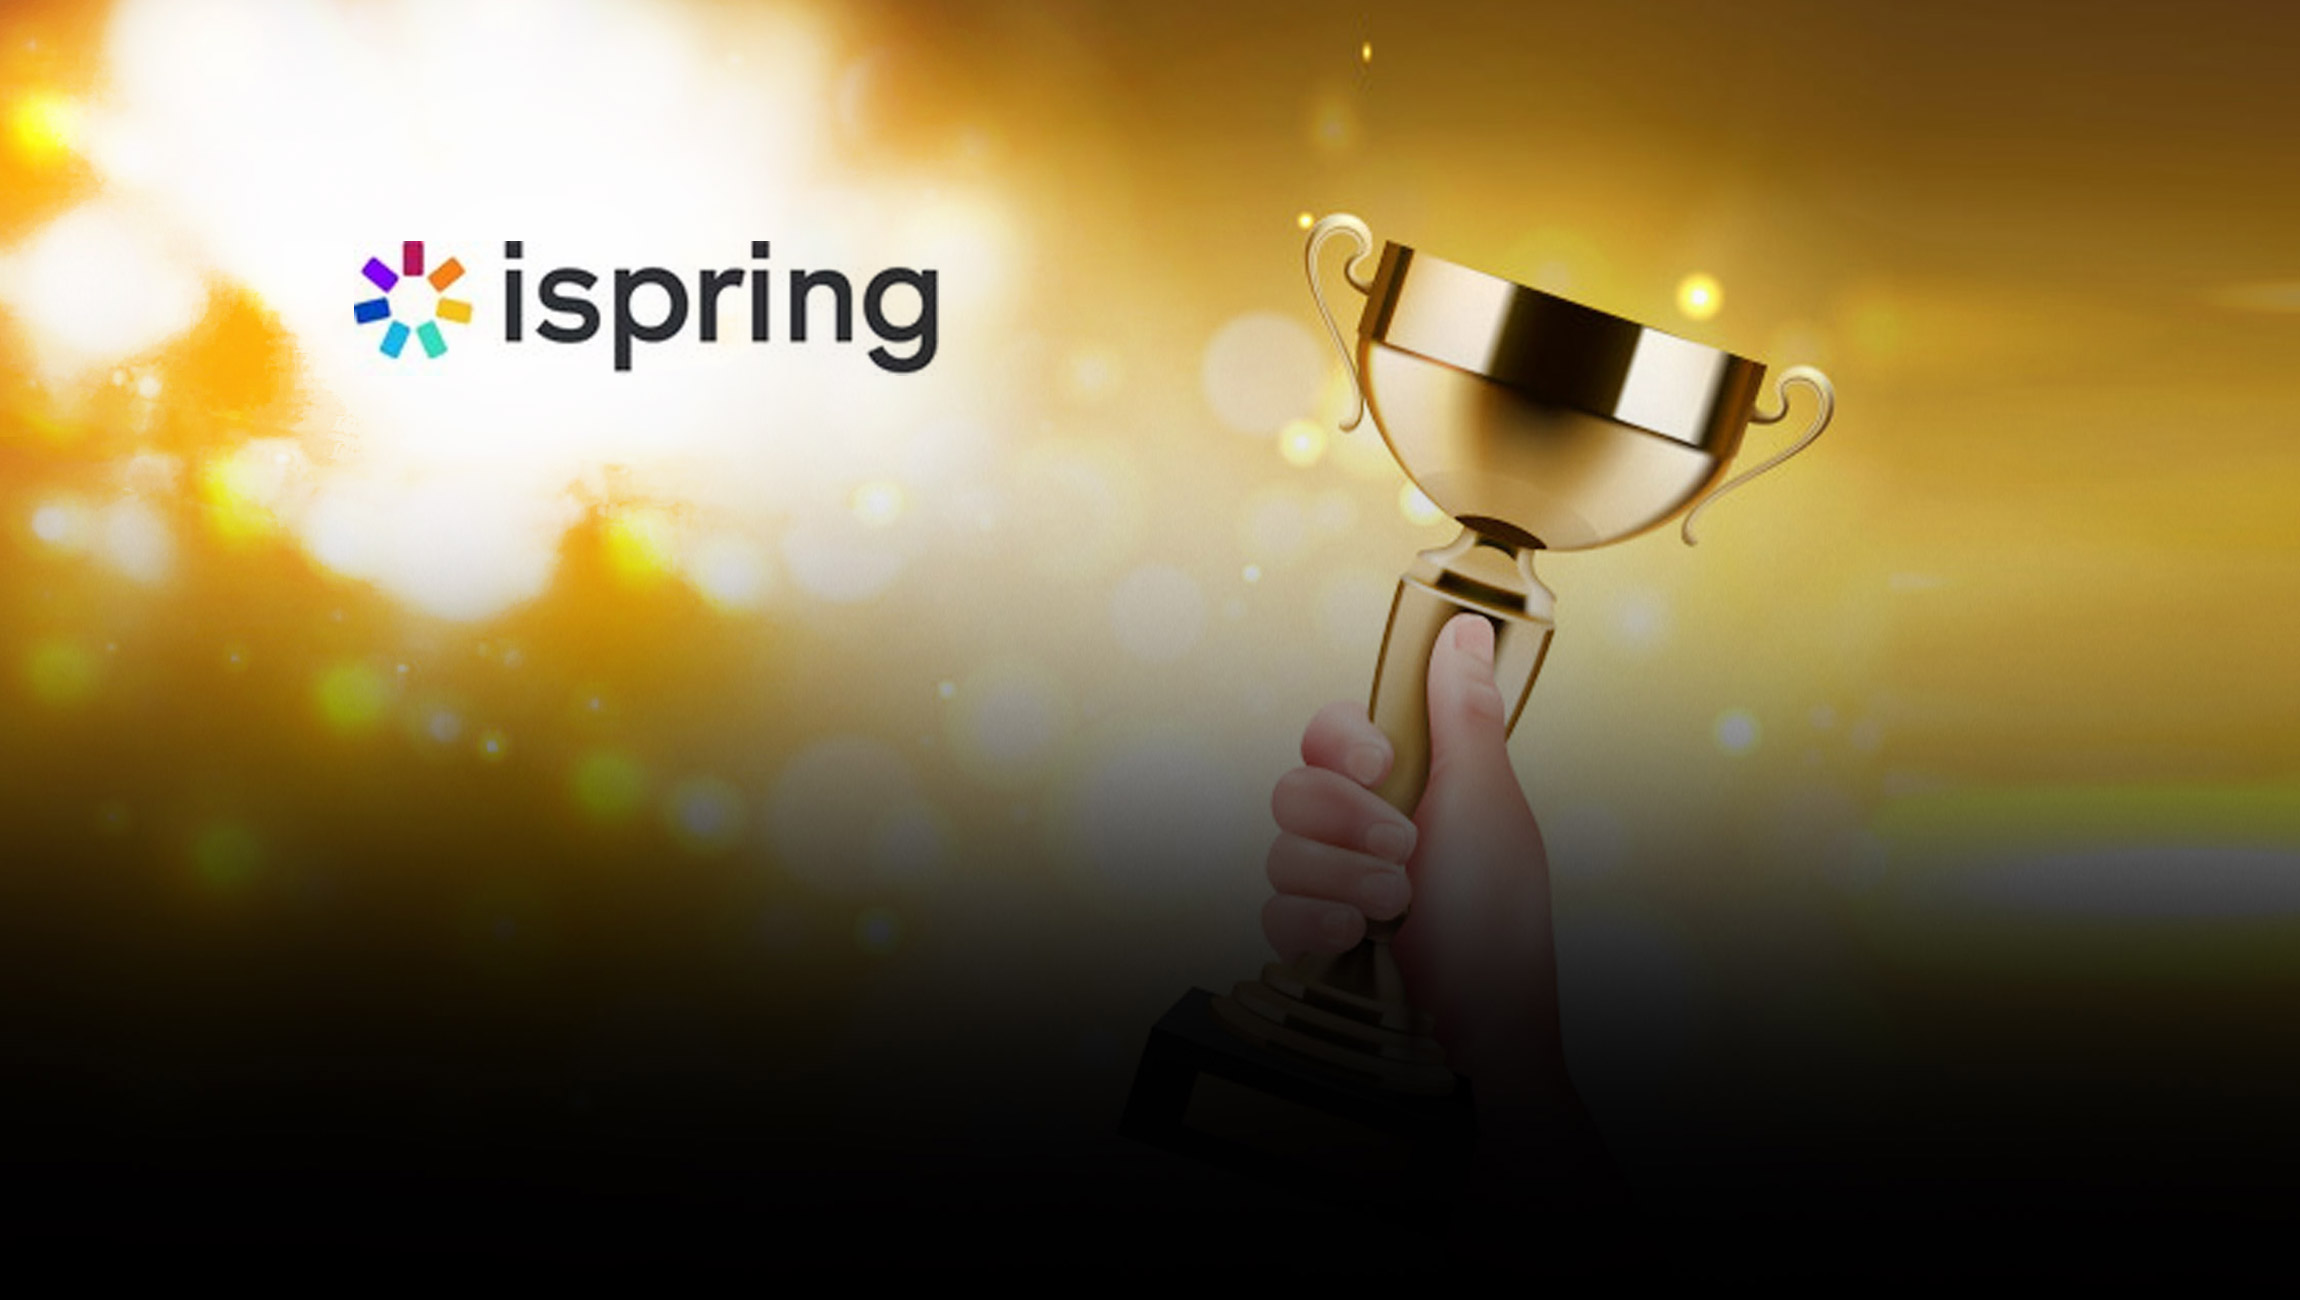 Oscar-for-Technical-Support-iSpring-Receives-Best-Company-Award-for-Customer-Service